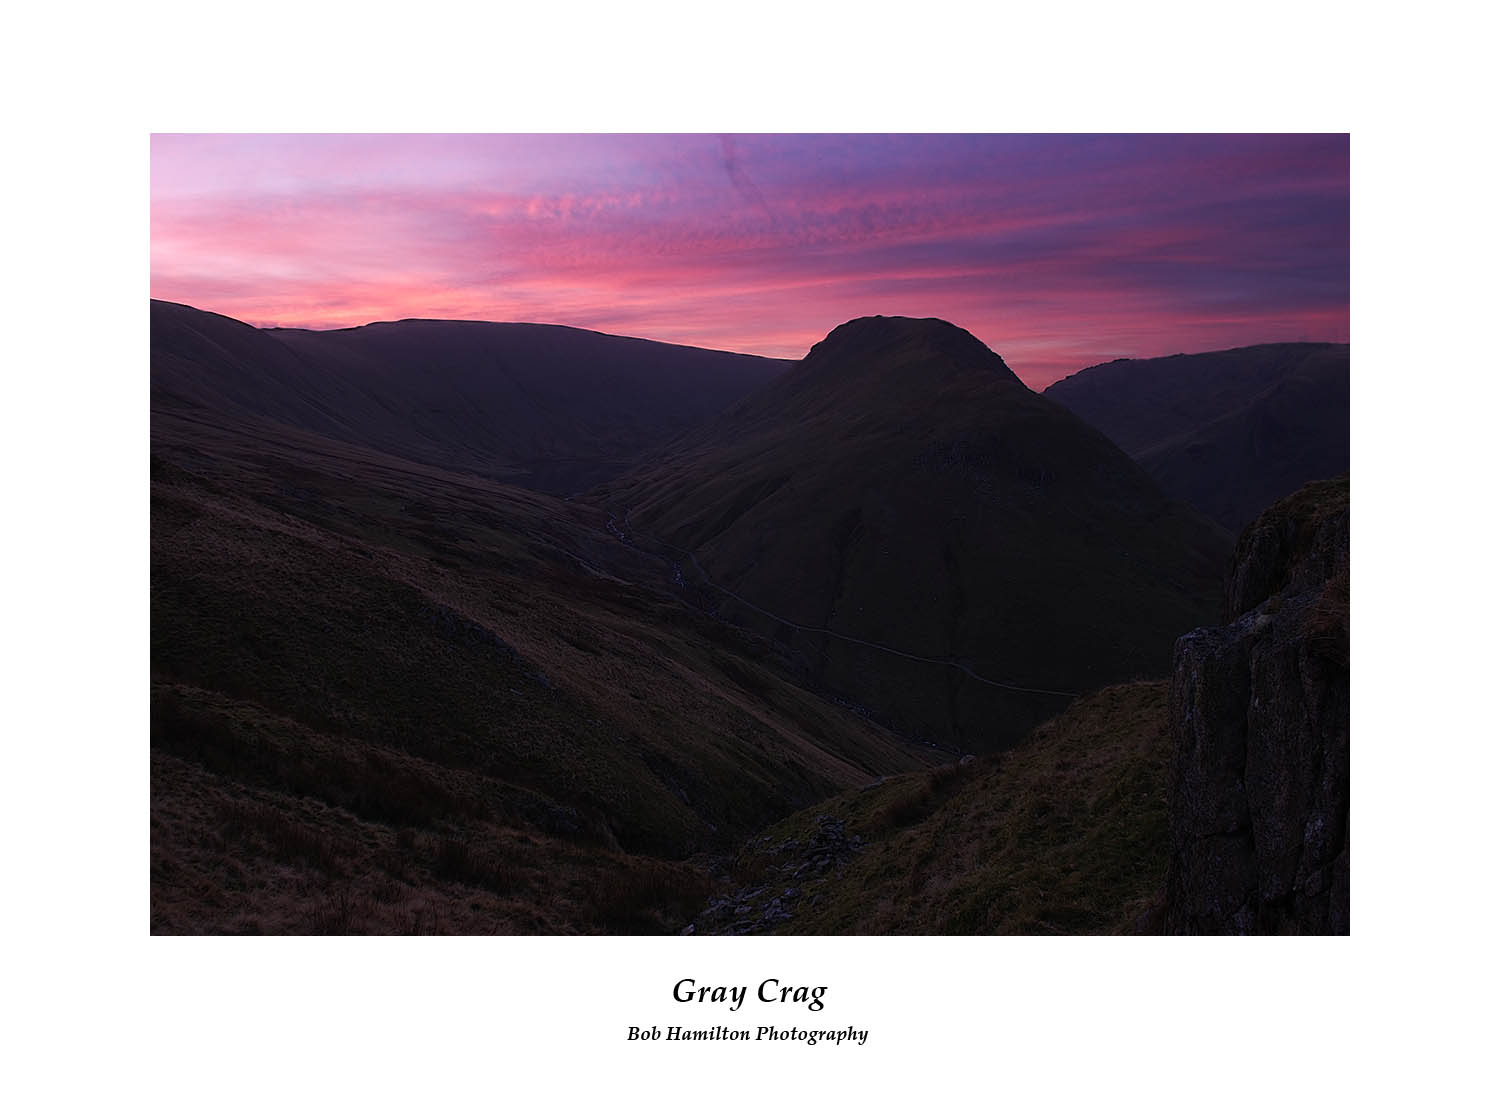 DSF1653 Dawn on Gray Crag from Brock Crags